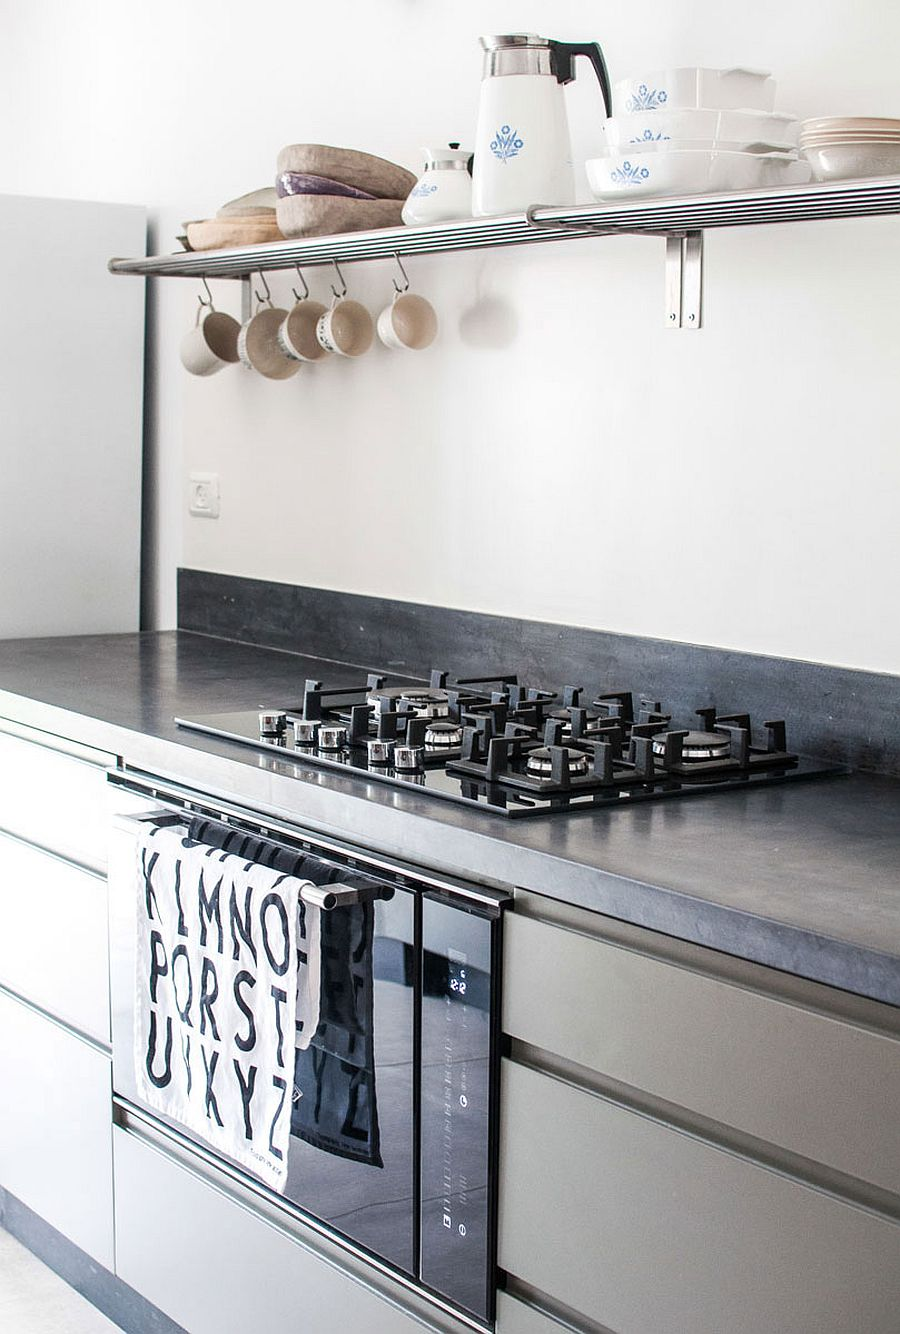 Floating shelves and hooks on the walls help save further space in the tiny kitchen